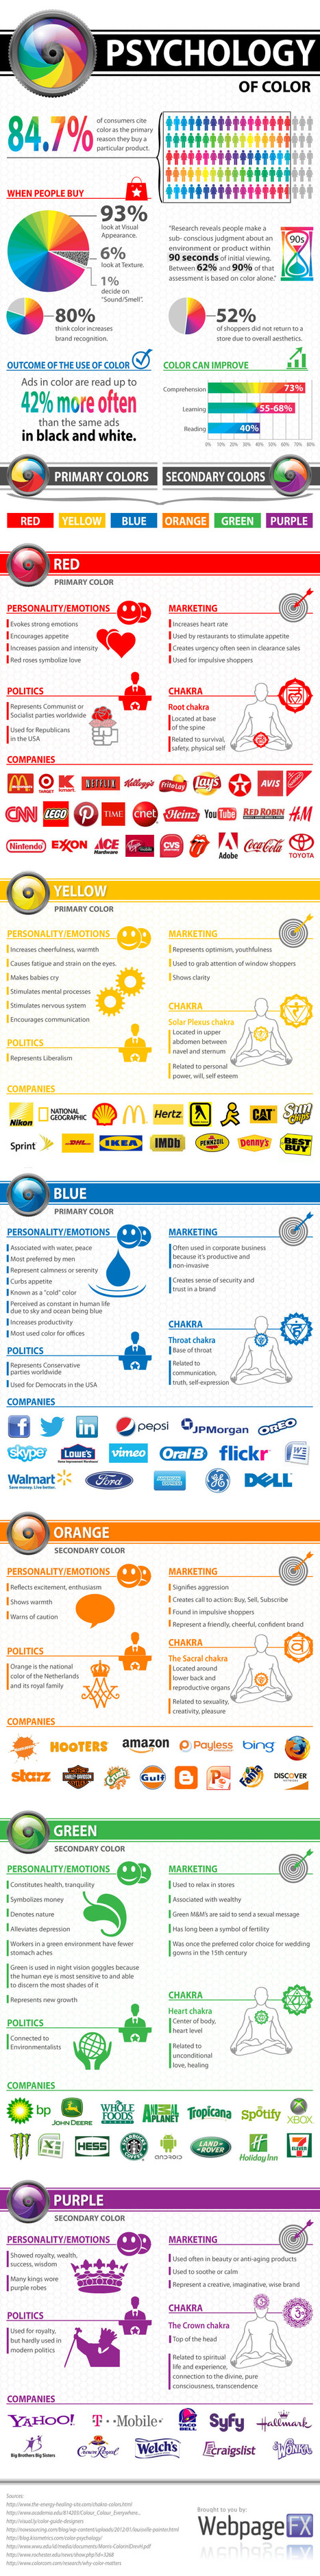 The Psychology of Color: How it Affects Buying Decisions [Infographic] | Technology Education | Scoop.it